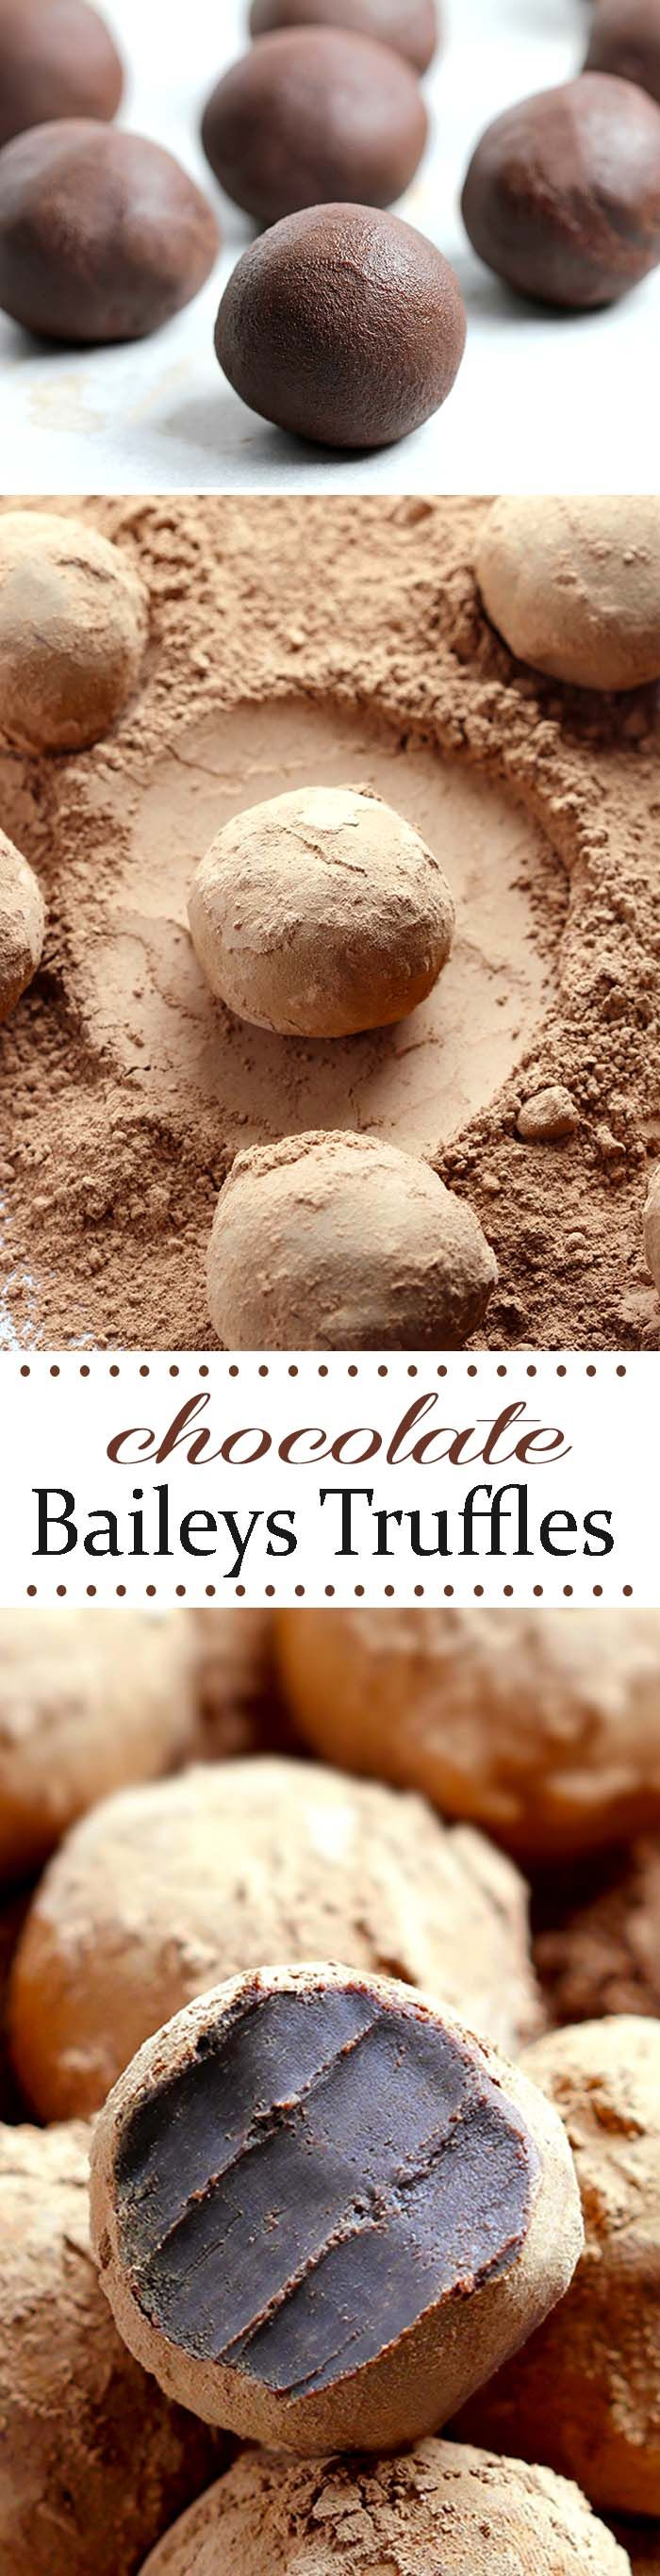 Baileys and chocolate – can life get any better I wonder?!